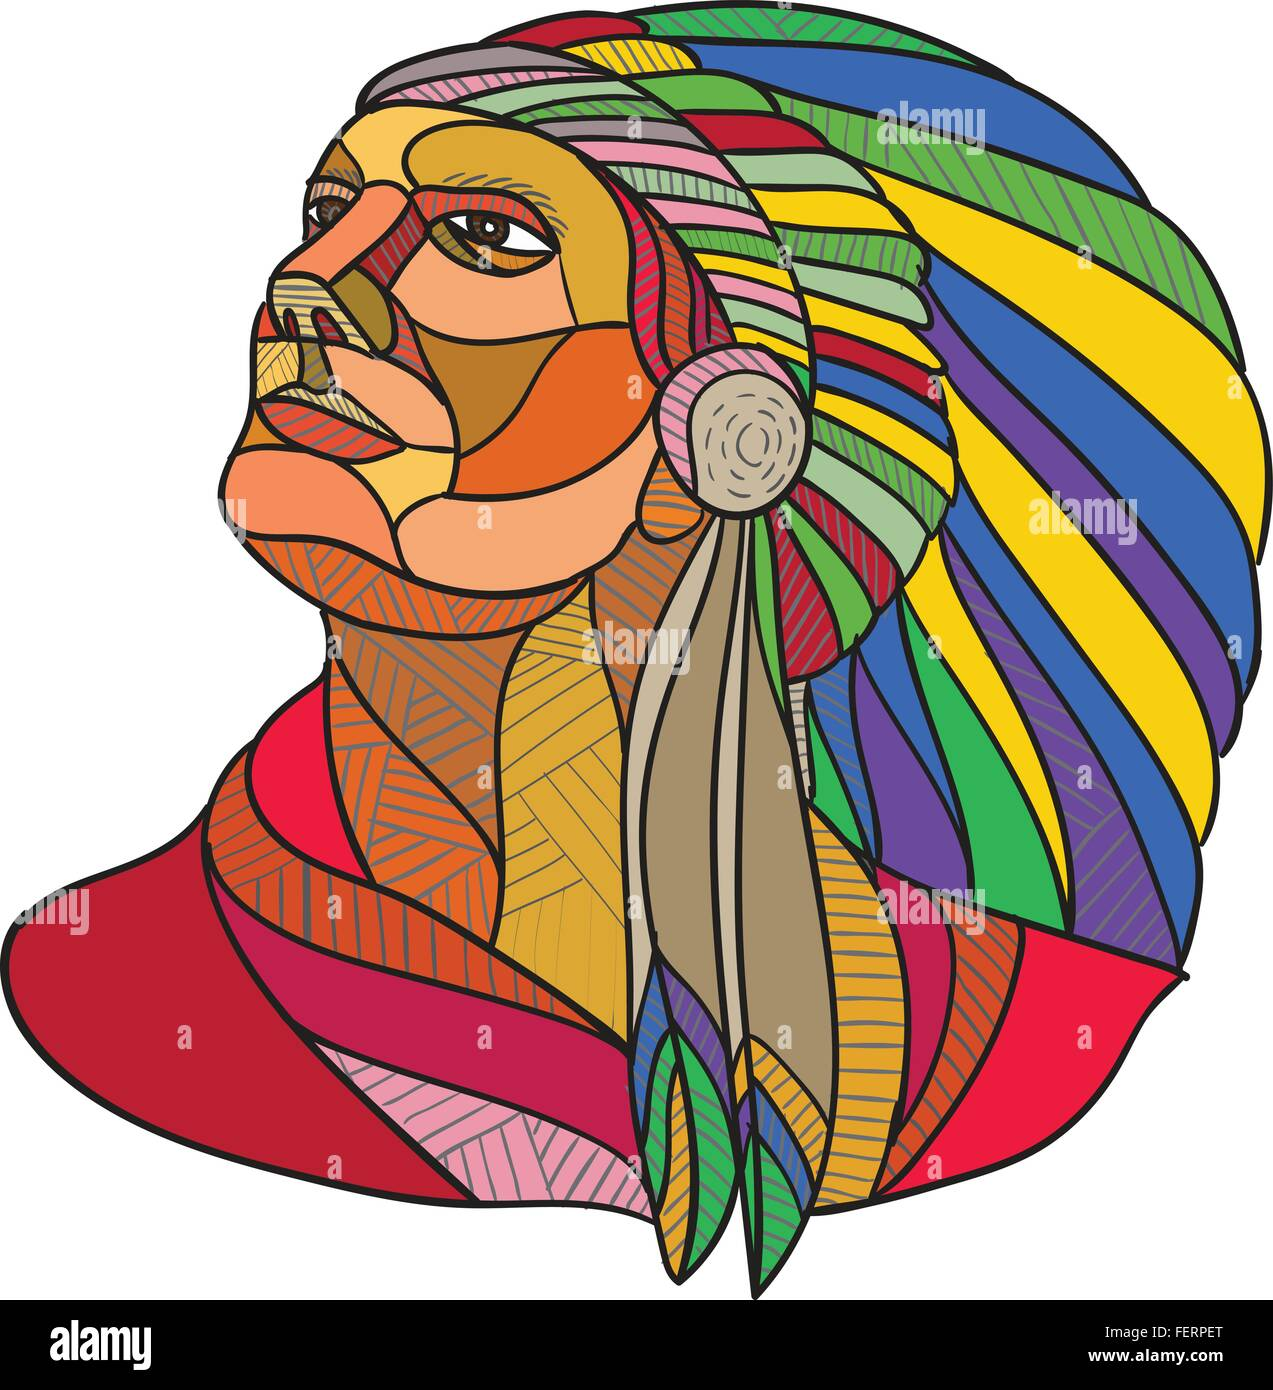 Drawing sketch style illustration of a native american indian chief warrior with headdress looking to the side set - Stock Image